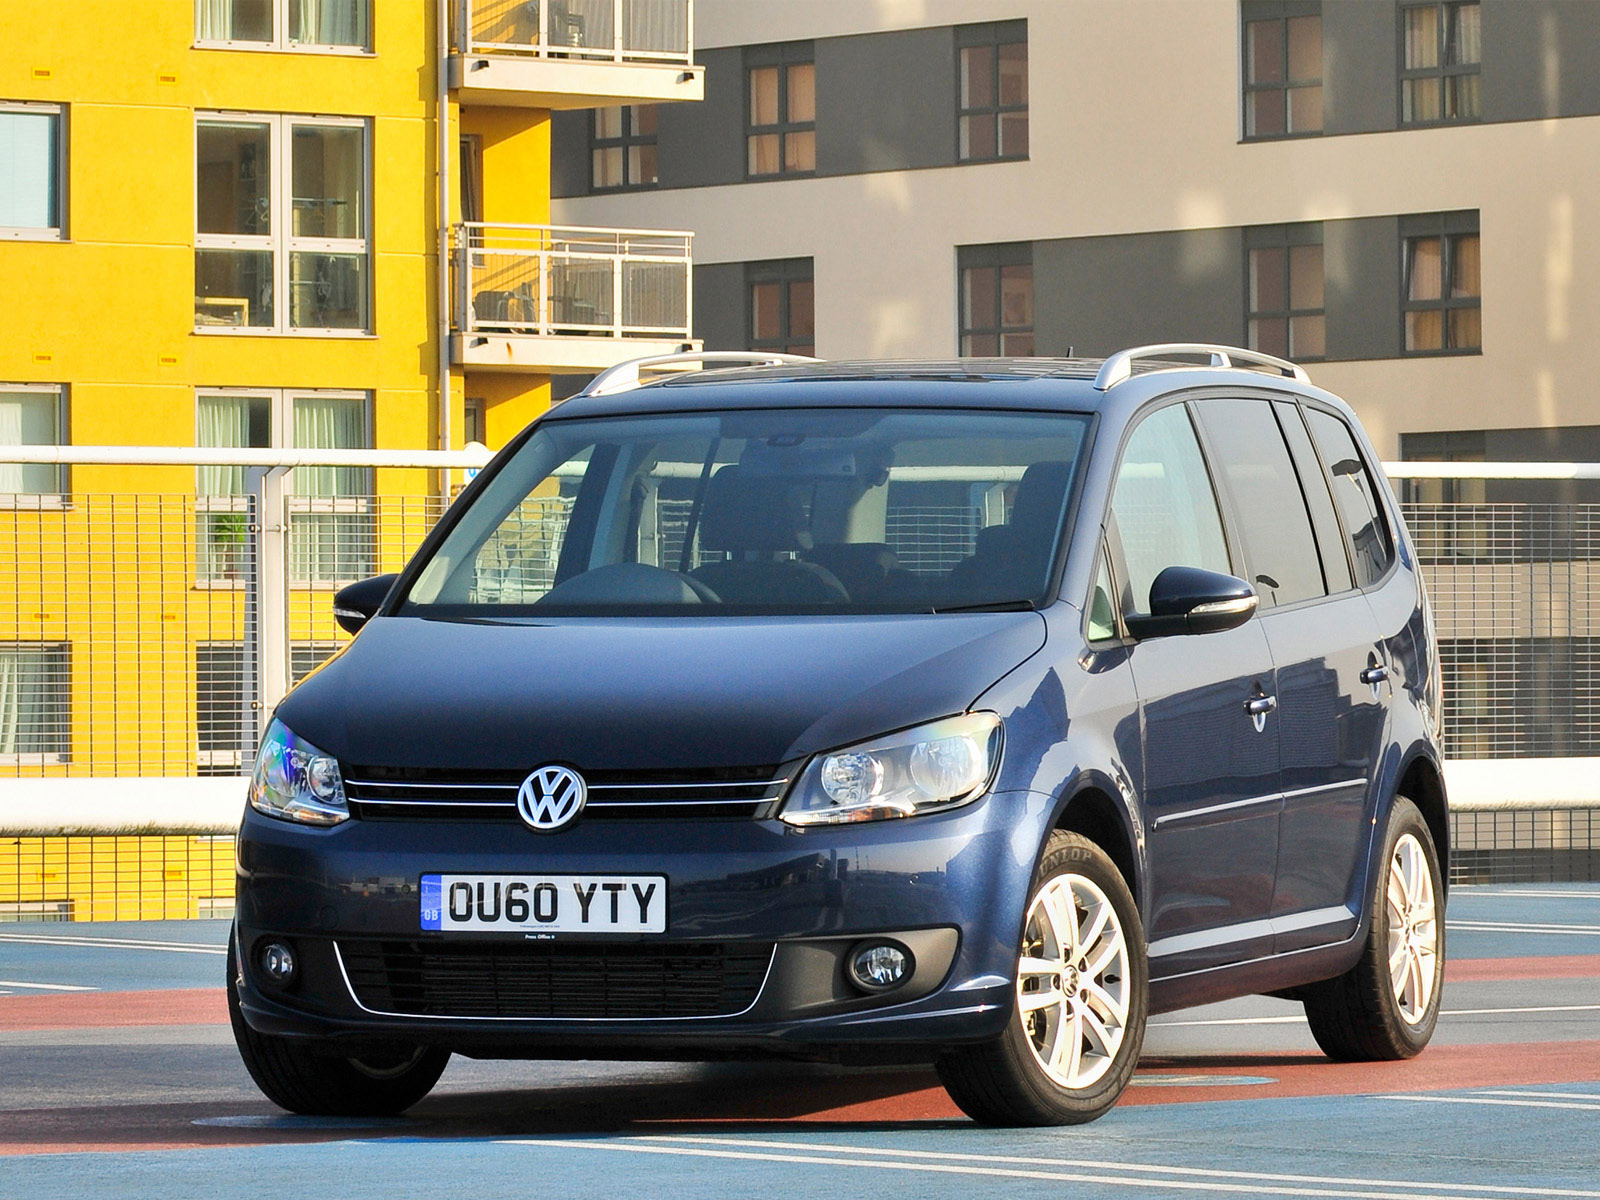 volkswagen touran uk 2010 volkswagen touran uk 2010 photo 06 car in pictures car photo gallery. Black Bedroom Furniture Sets. Home Design Ideas